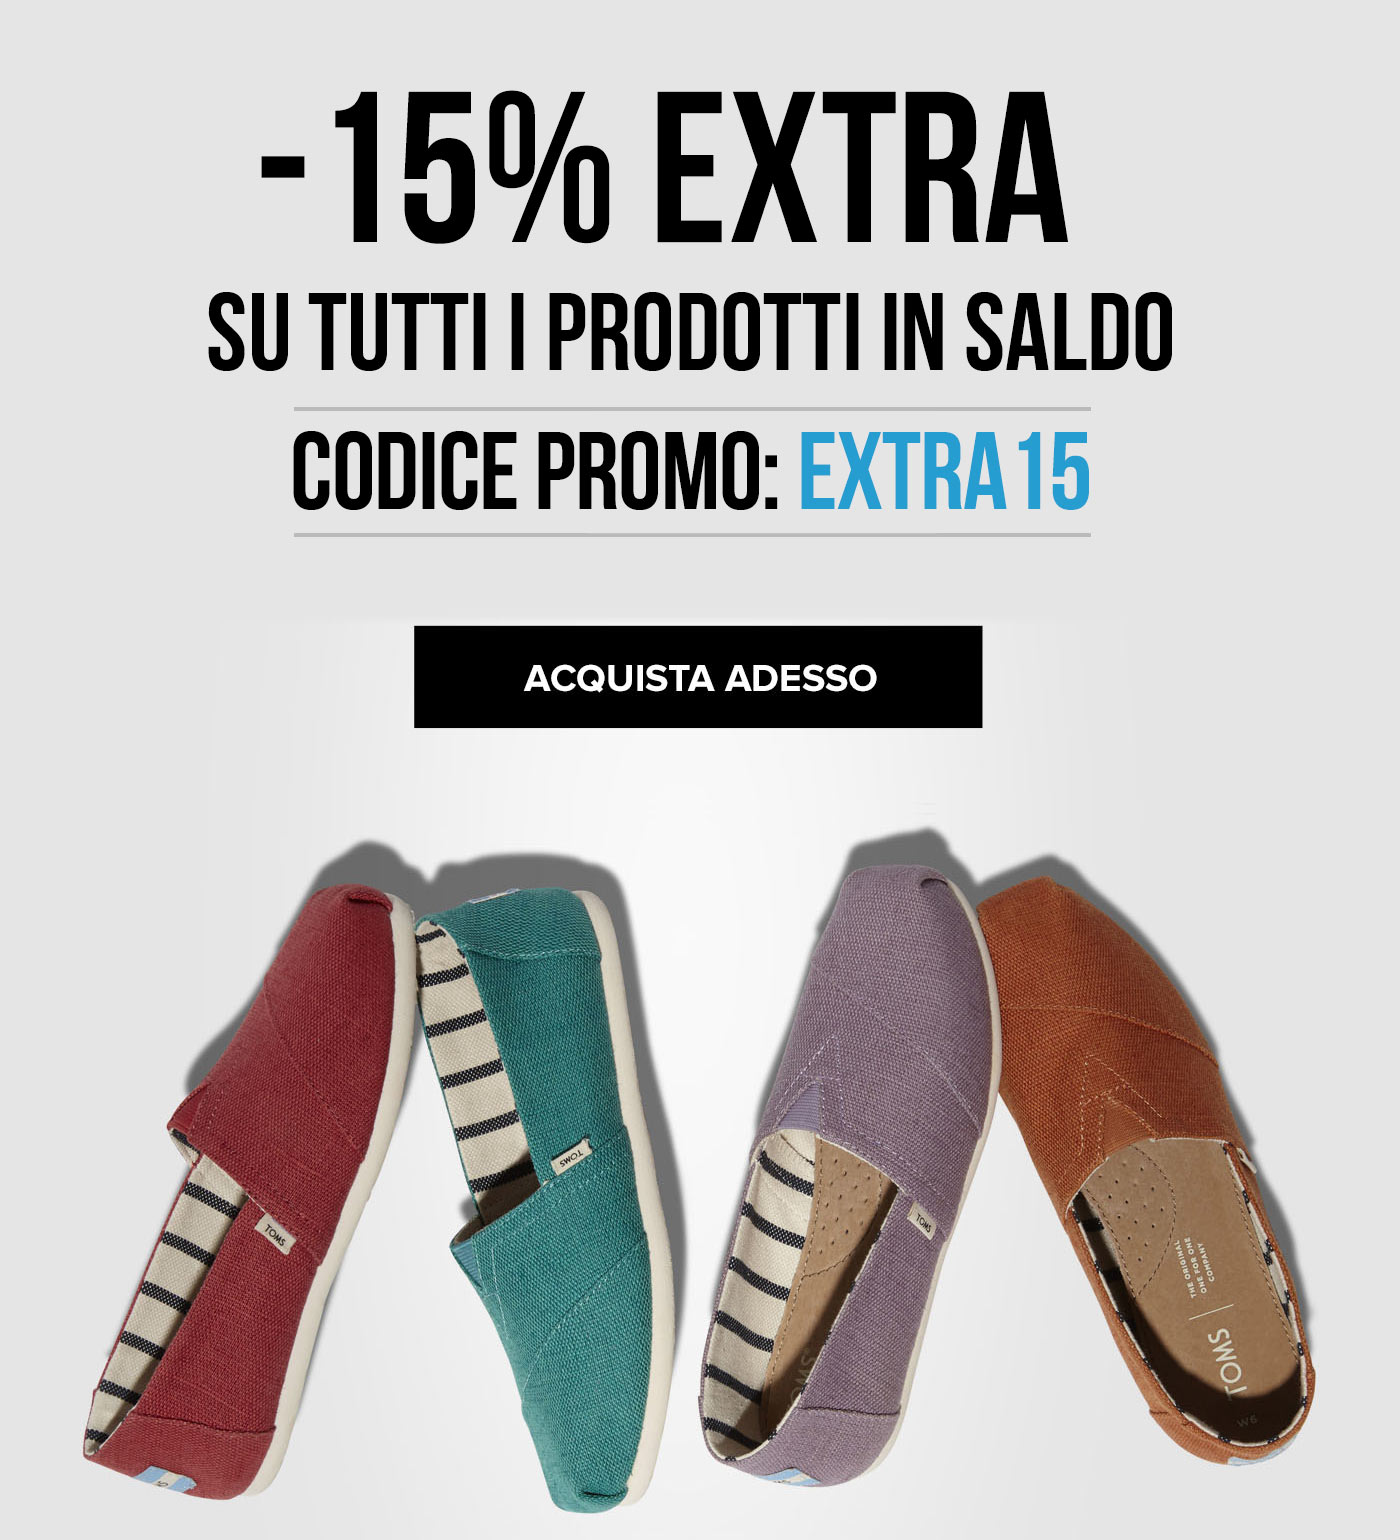 b9f64b2679 TOMS® Sito Ufficiale Italia | Together we stand